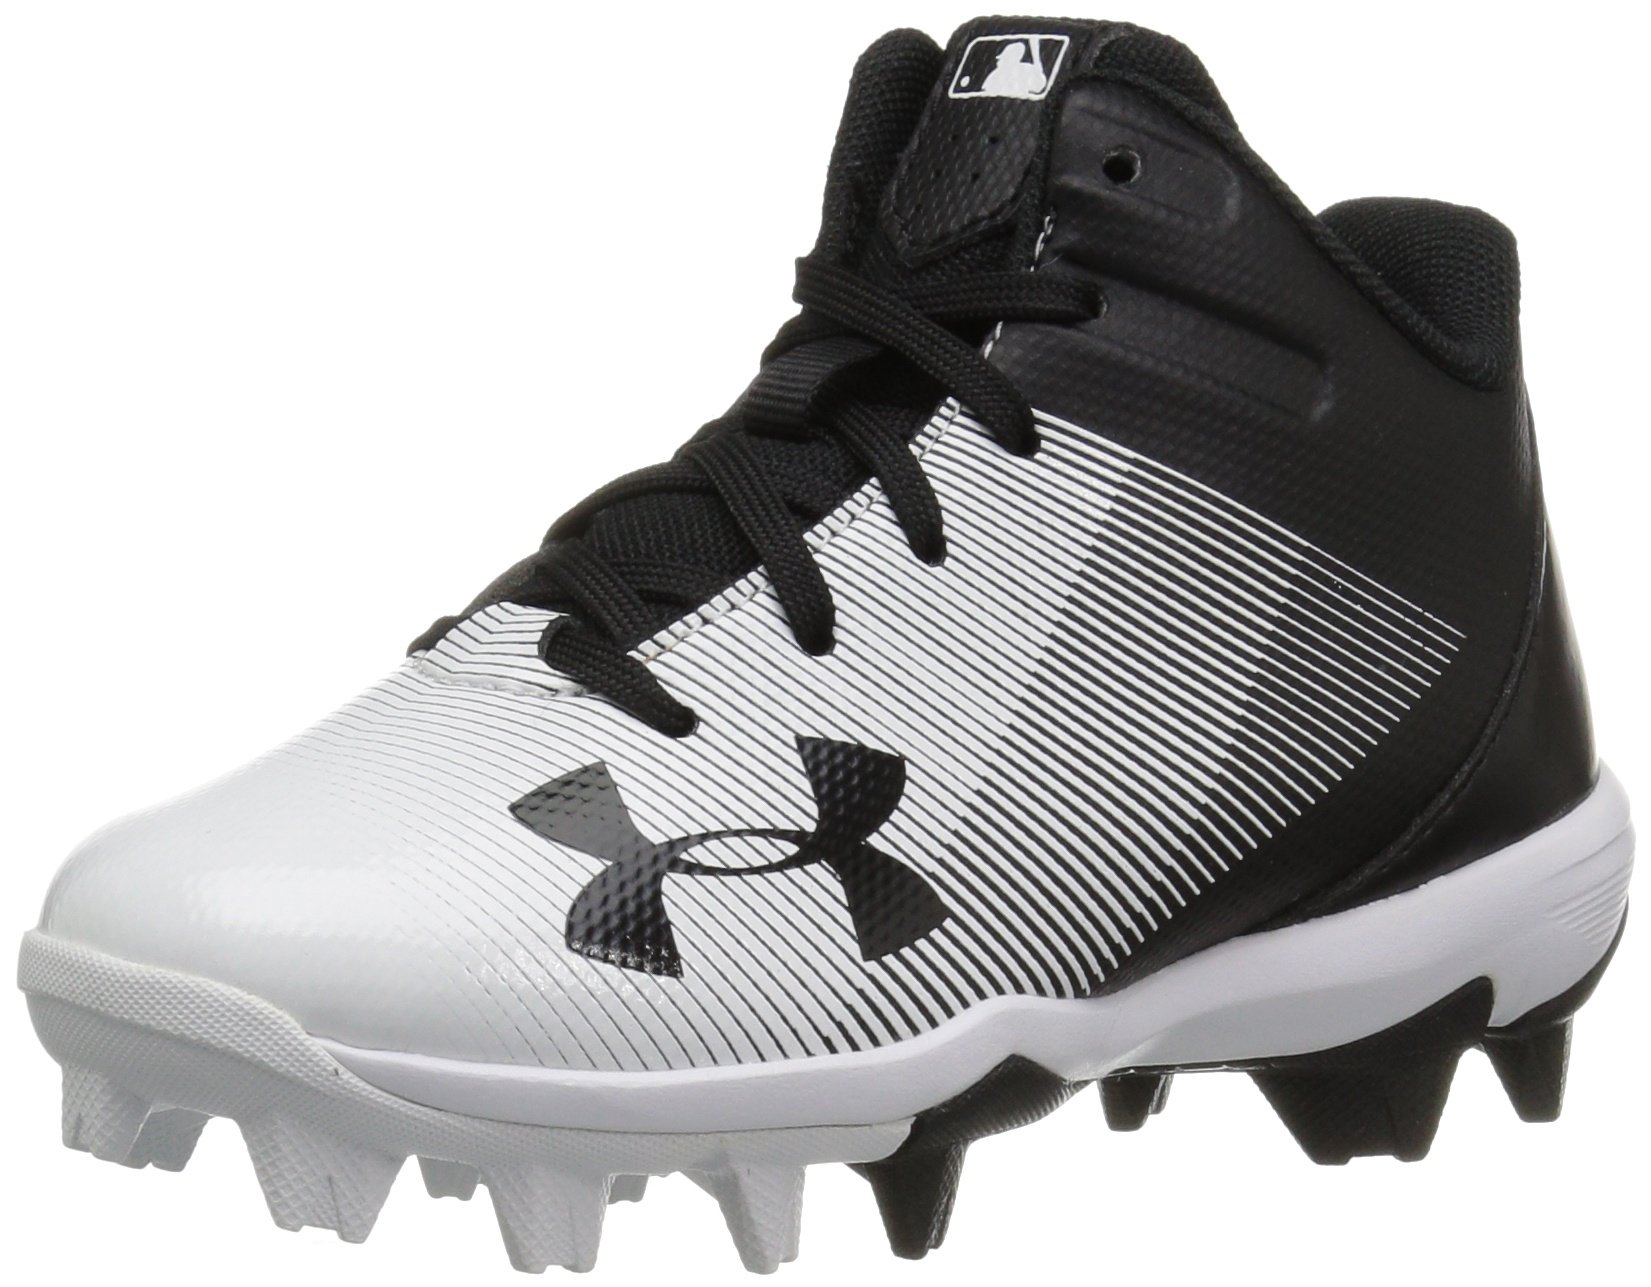 Under Armour Boys' Leadoff Mid Jr. RM Baseball Shoe, Black (011)/White, 3.5 by Under Armour